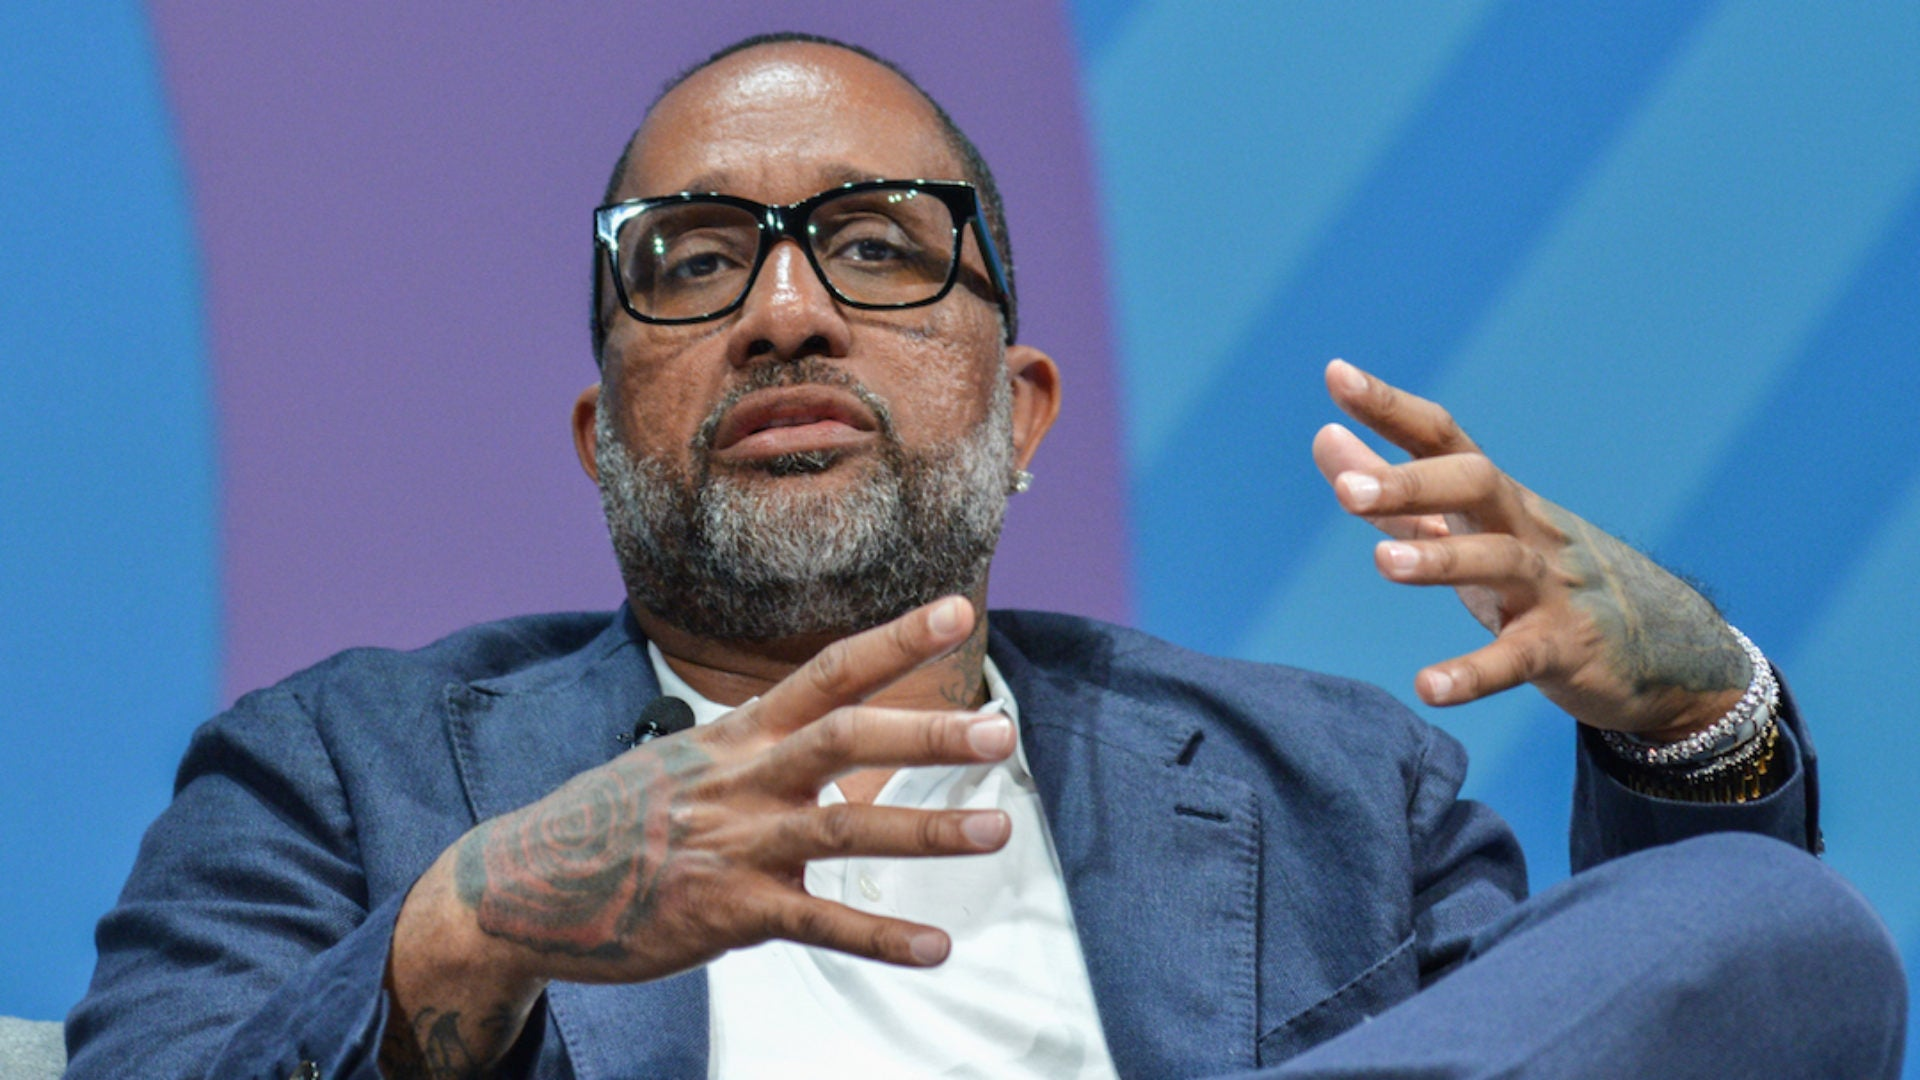 Kenya Barris Says Another 'Black-ish' Spin-Off Might Be Coming To TV